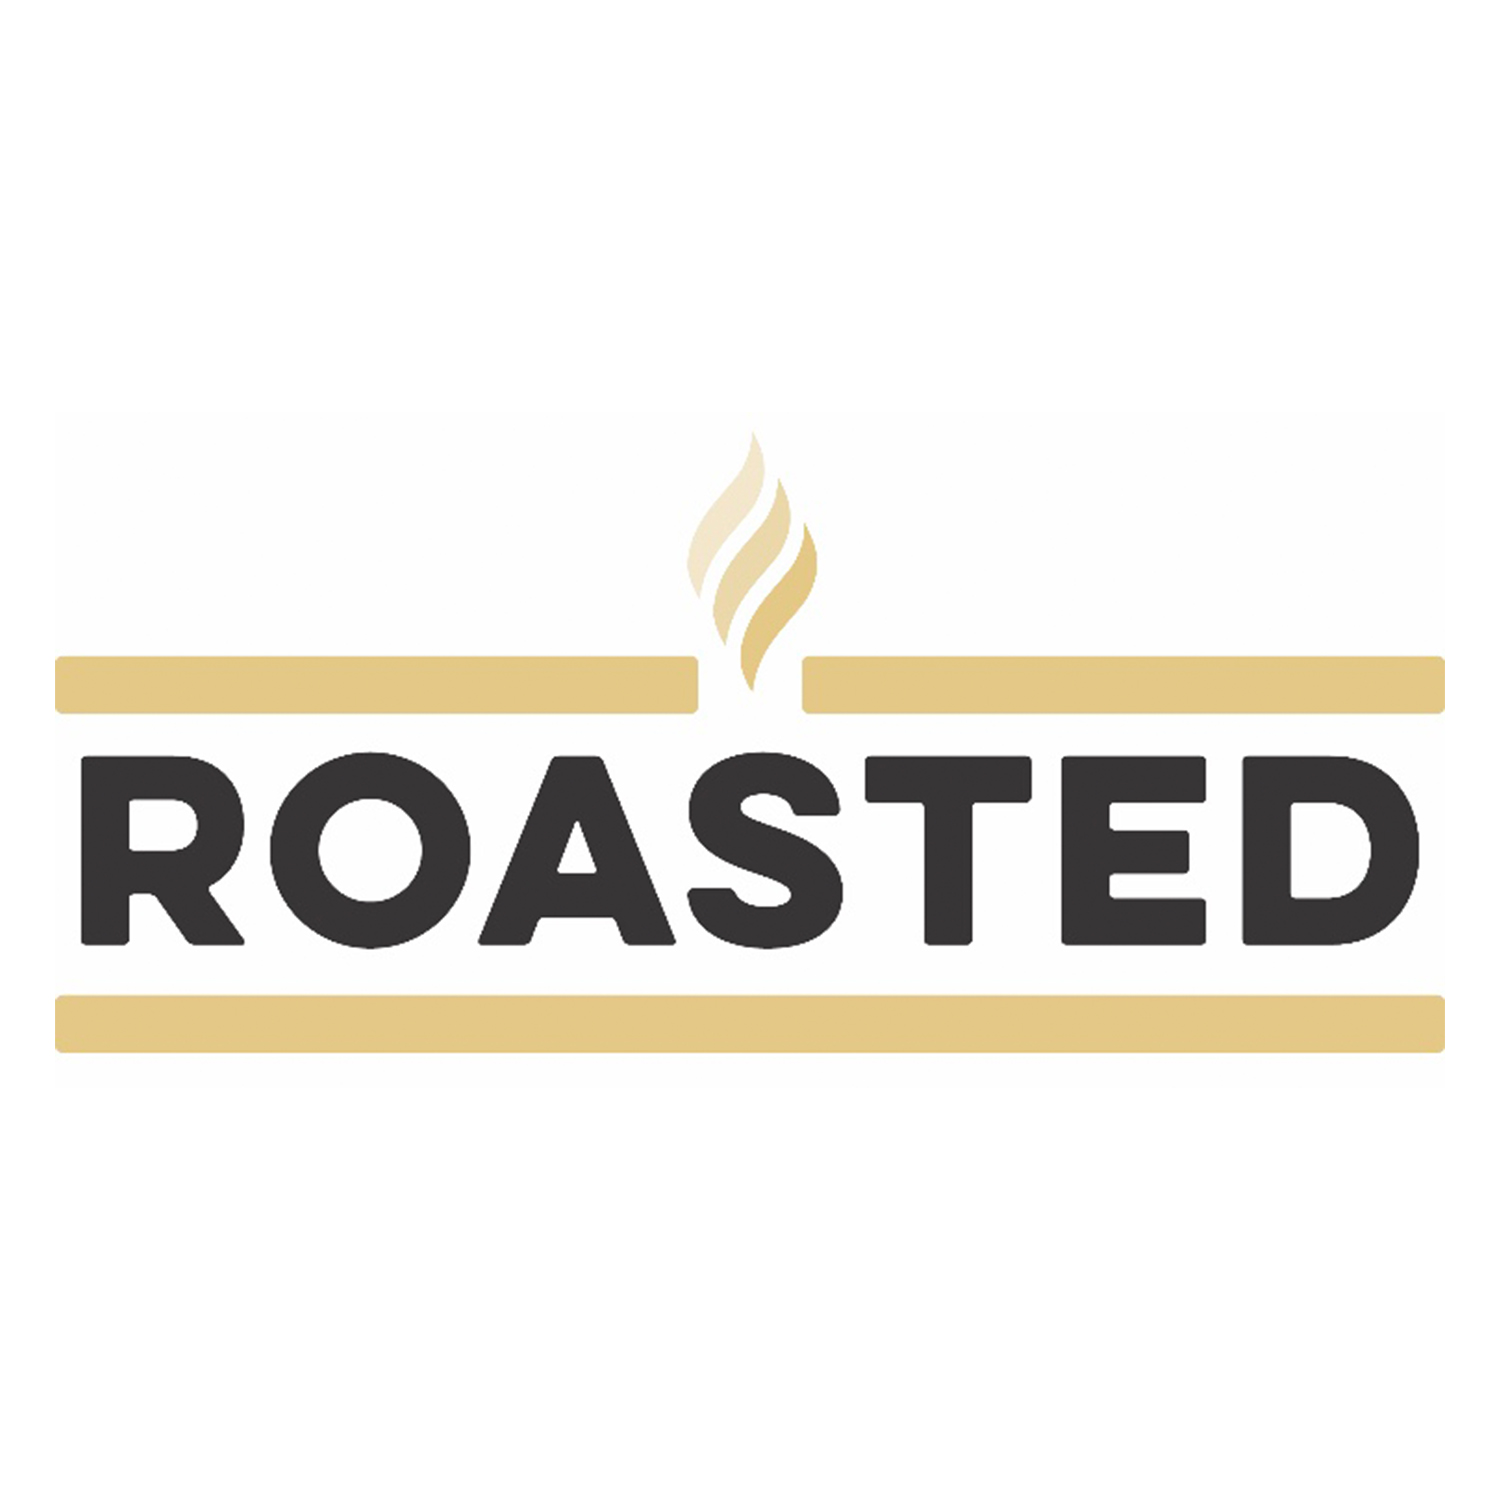 Roasted Stamford : Roasted is a trendy fast casual spot in the heart of Downtown Stamford serving up incredible food and drinks.